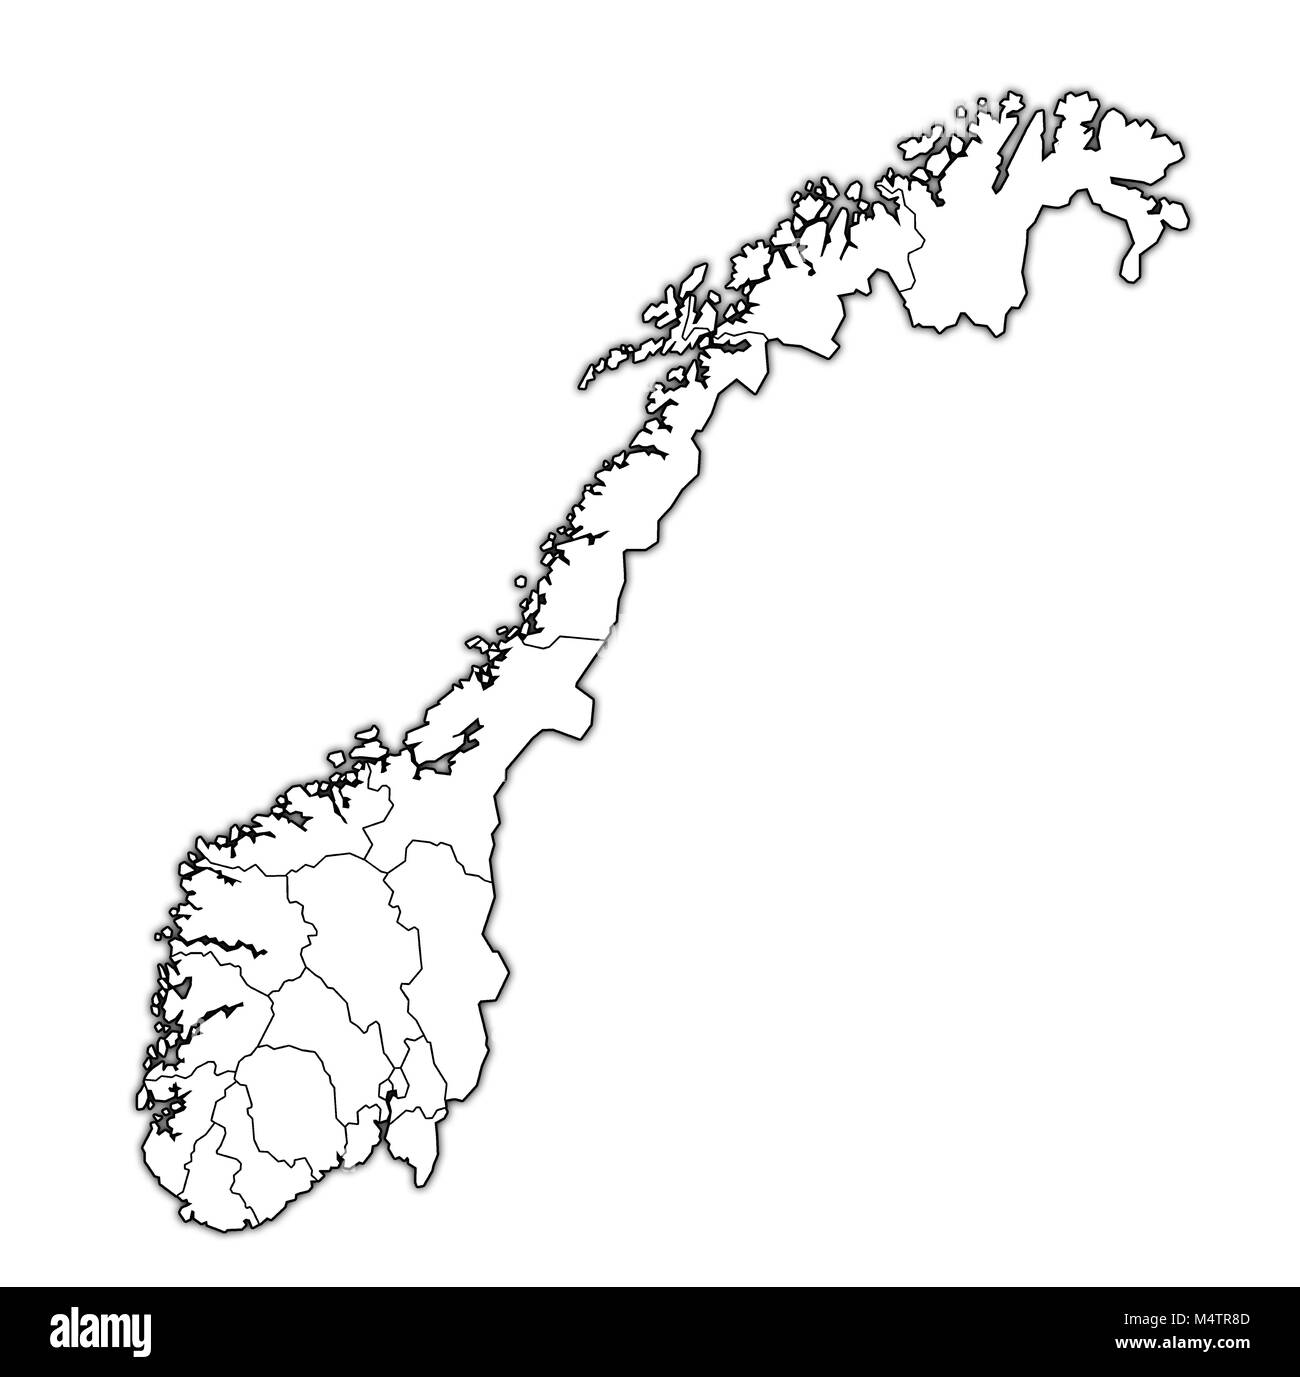 administrative divisions and borders on map of norway over whitel